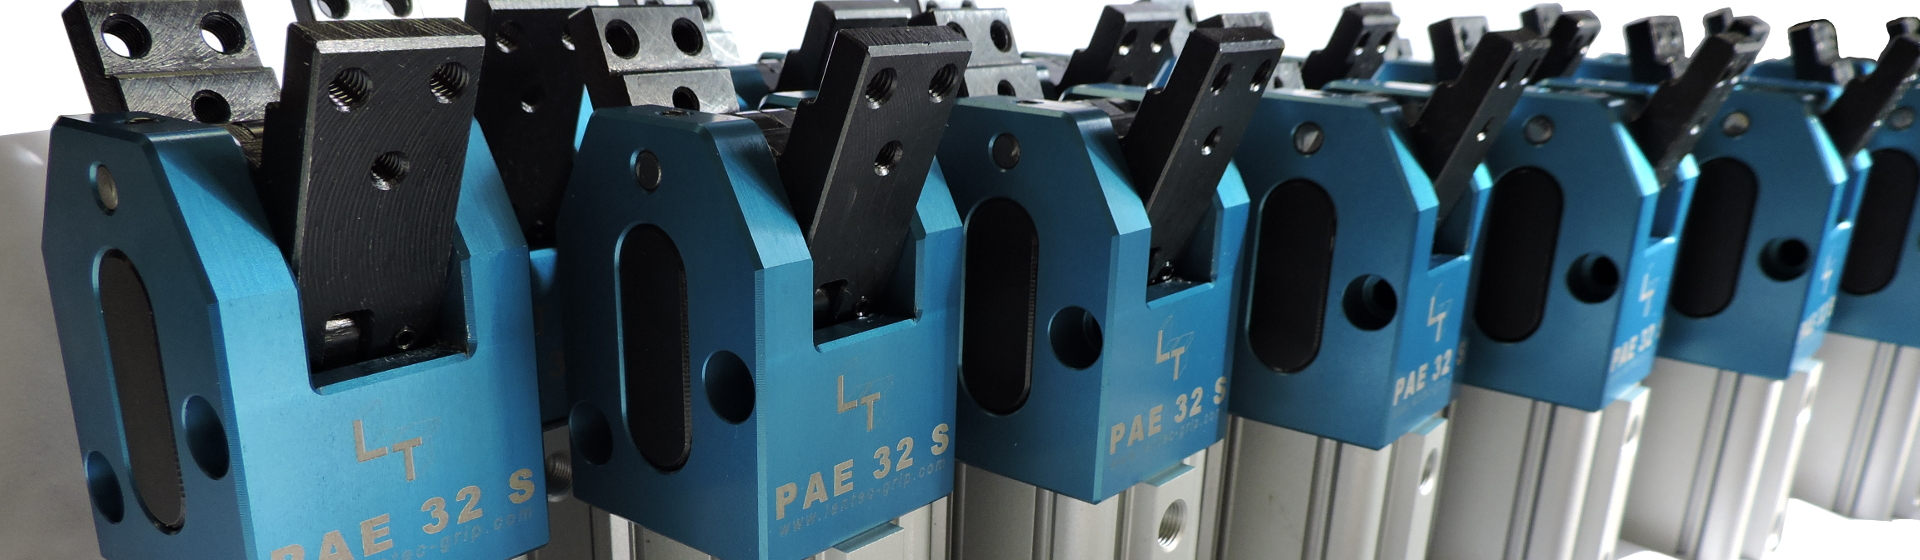 Lantec grip, Design and manufacture of clamps and pneumatic flanges